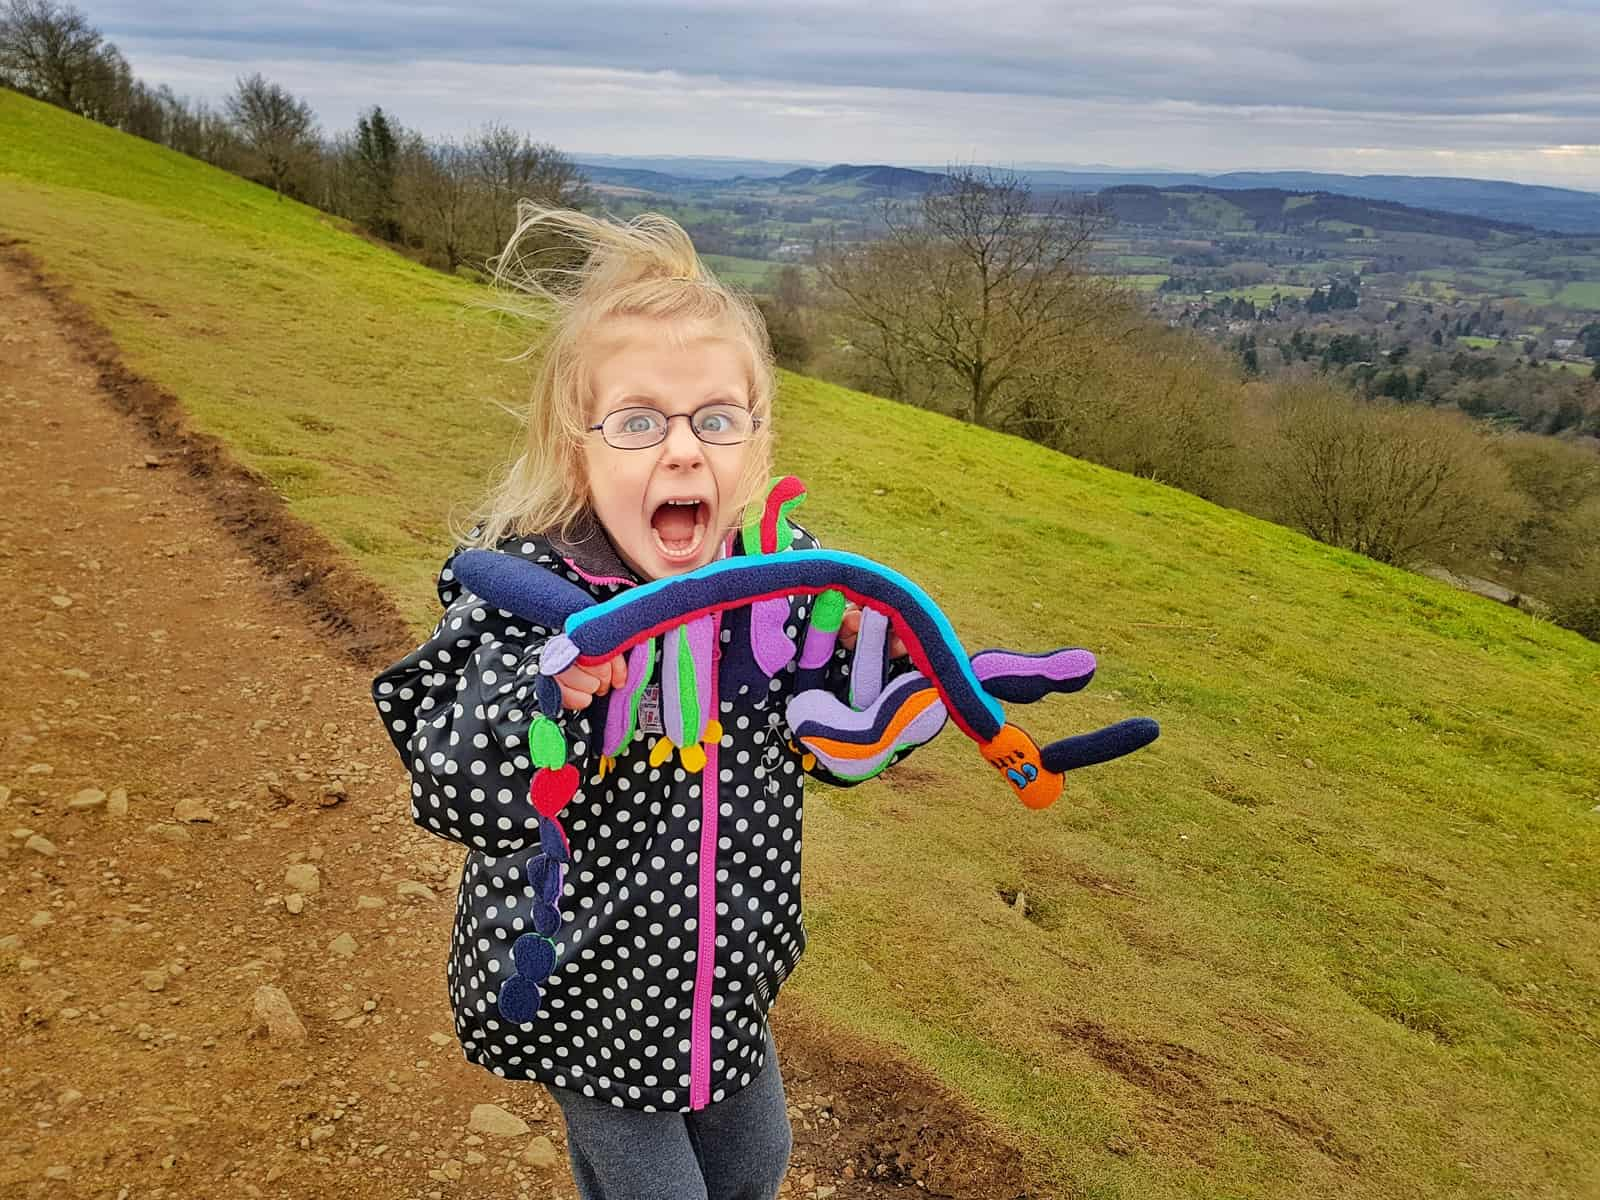 5 year old girl in black and white spotty coat on Malvern hills holding a cuddly toy long in shape with a red face and four legs with a long tail and bits sticking up. Girl is cheering.